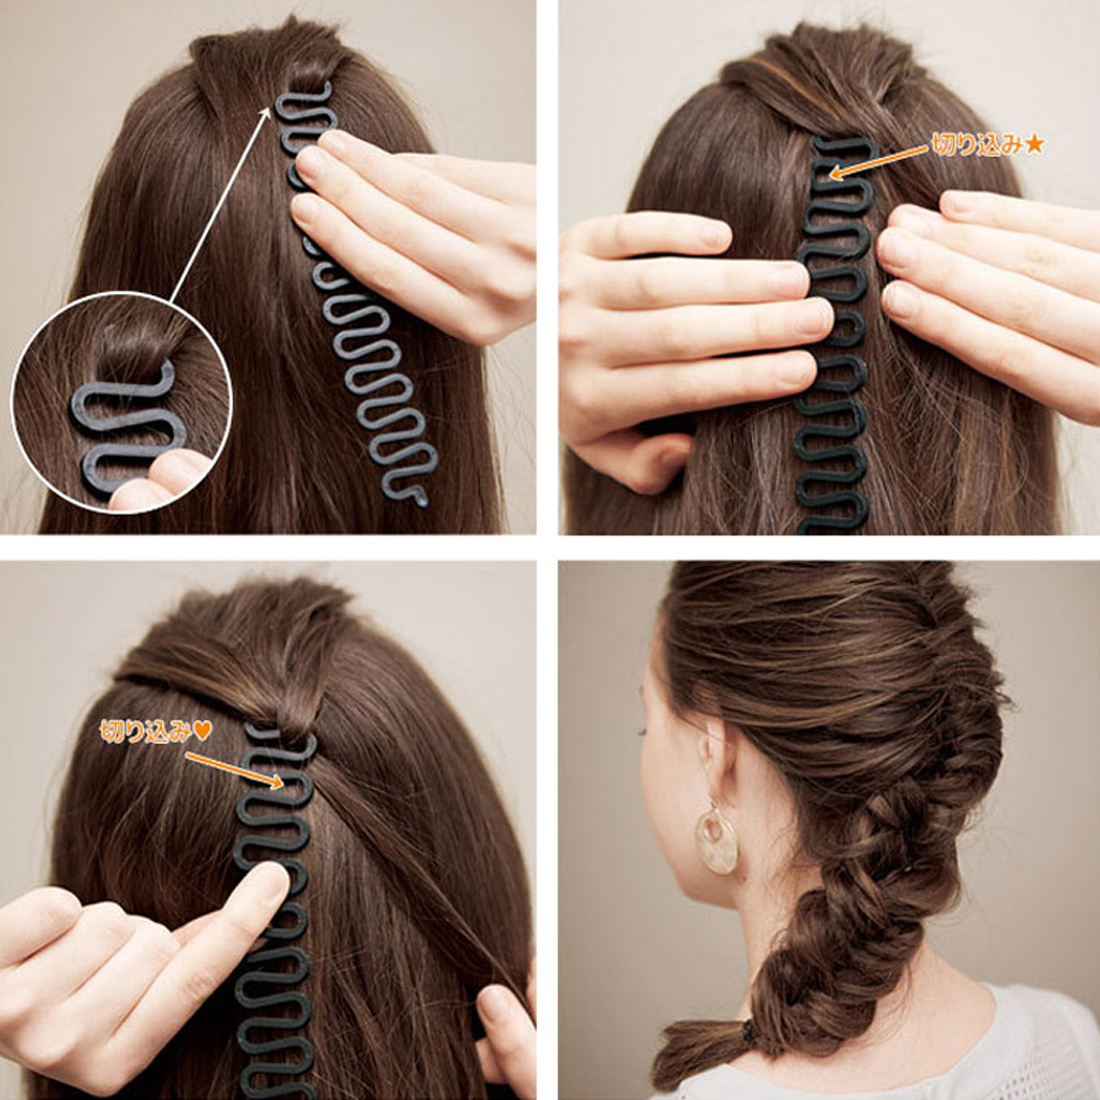 Barber Accessories Braided Artifact Lazy Hair Tools Hairpin Accessories Salon Accessories